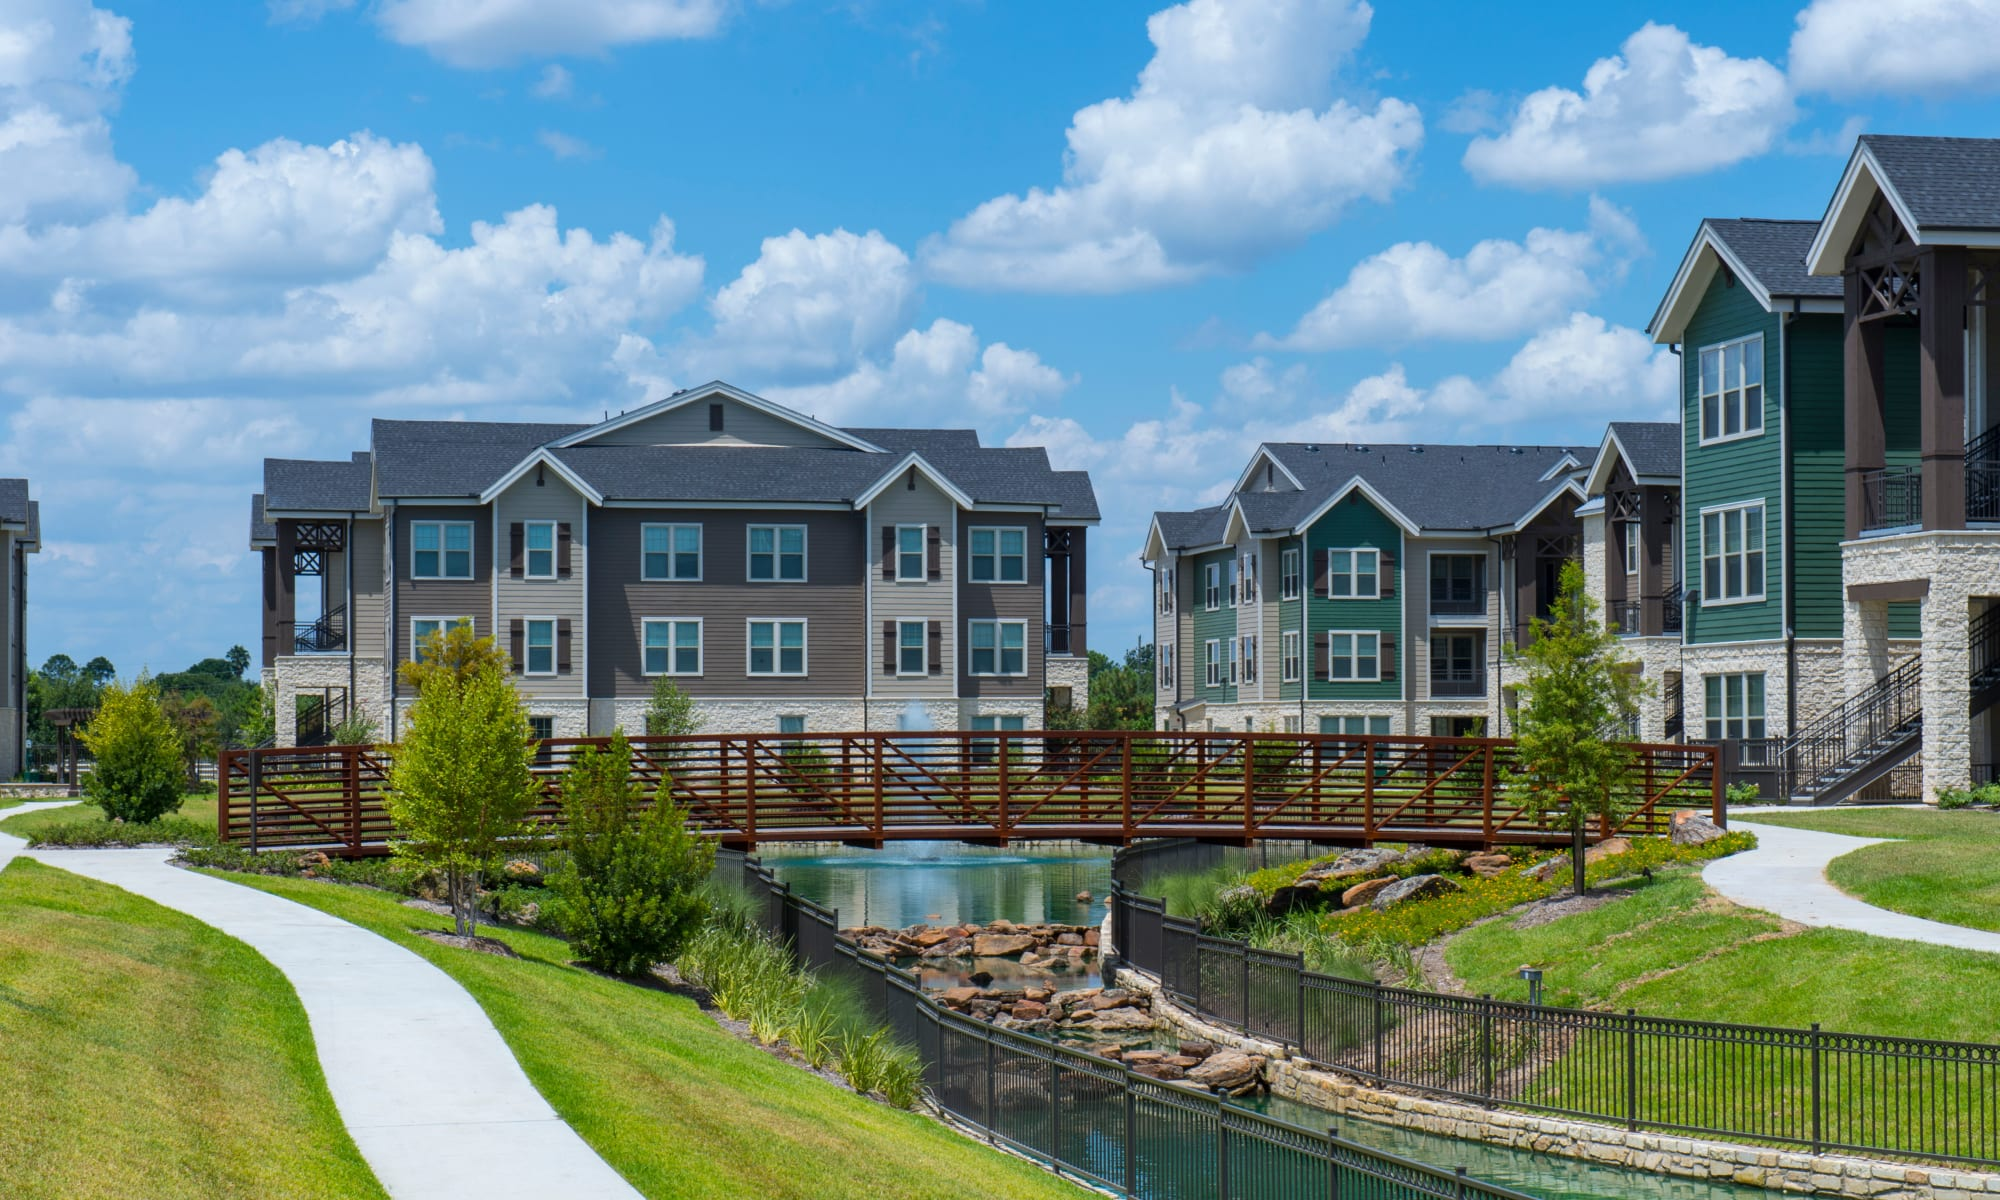 Apartments at Elite 99 West in Katy, Texas